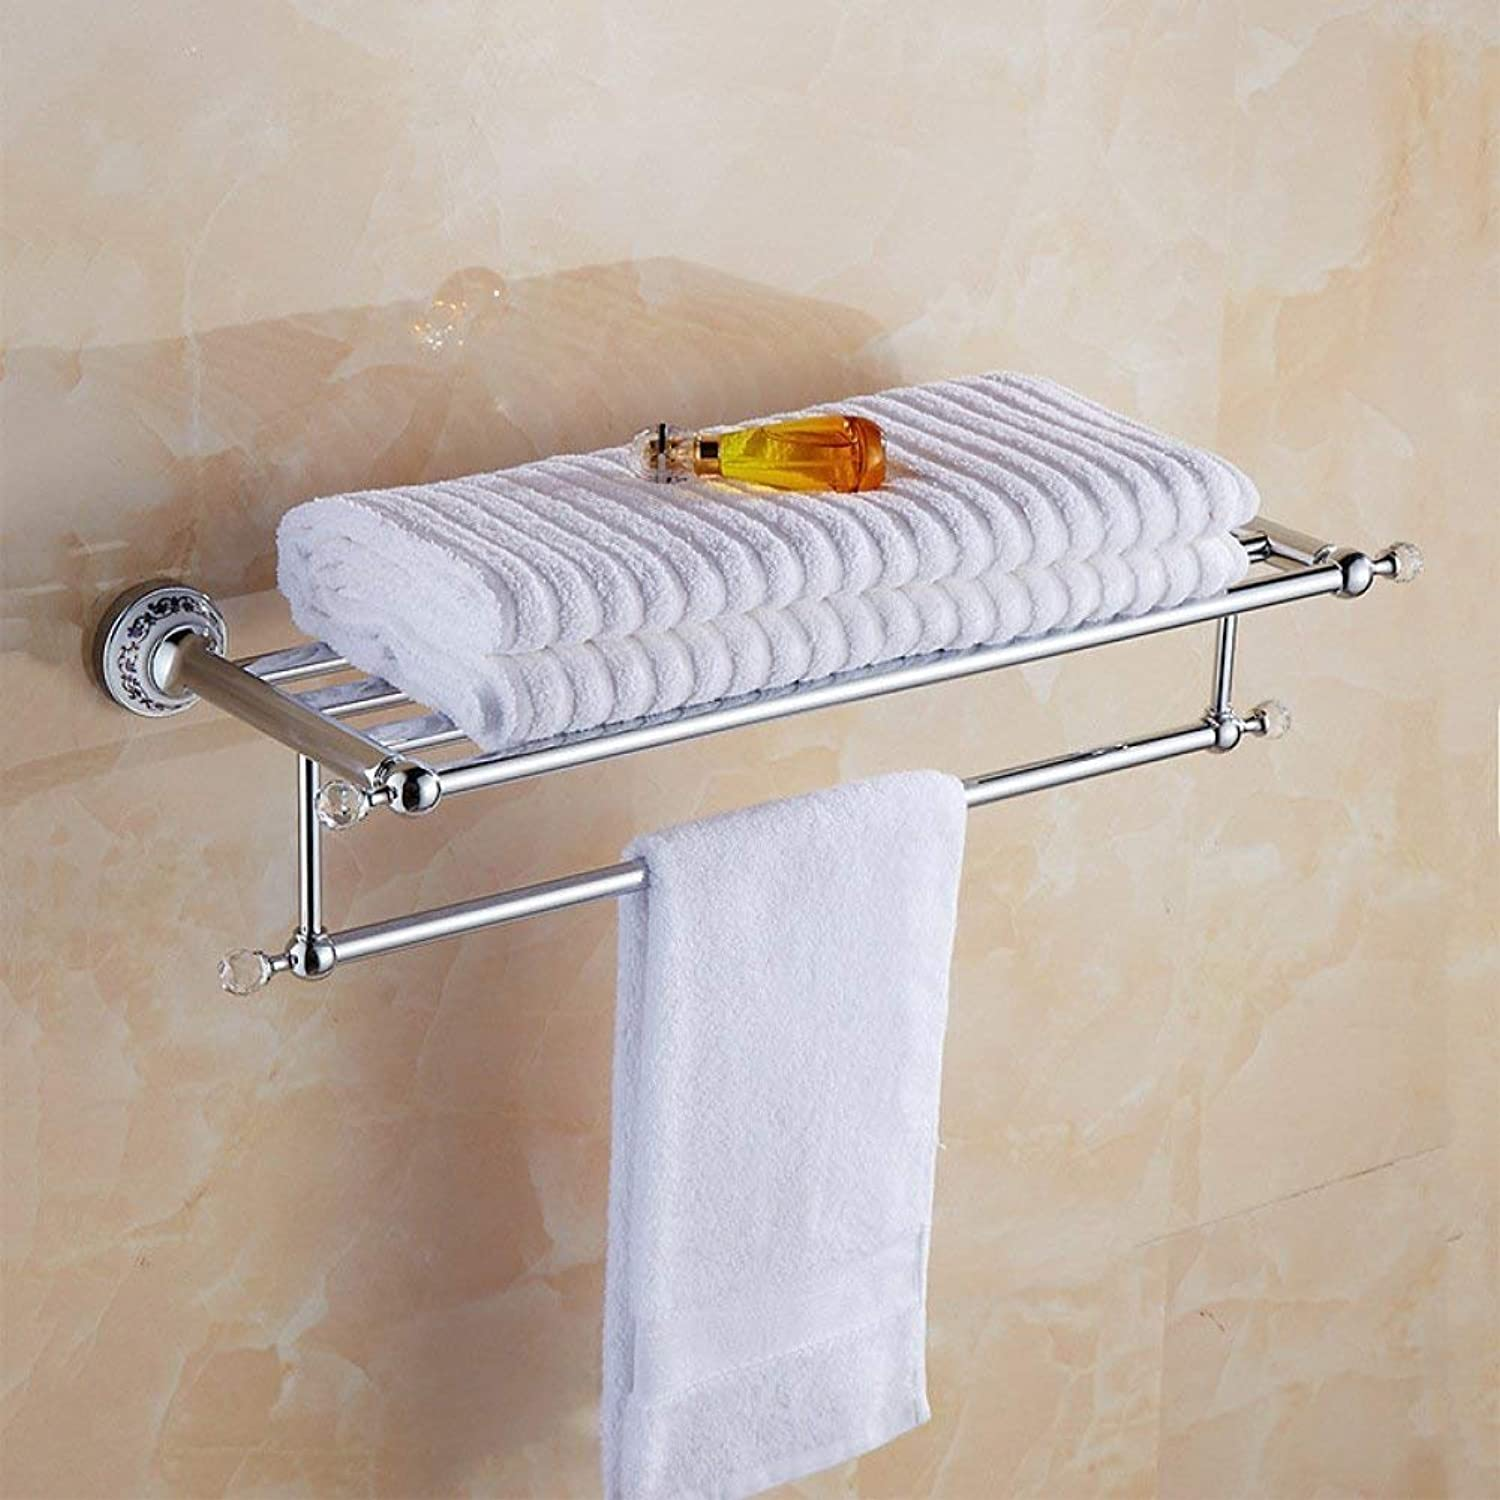 Home and Decoration of The Hotel of Luxury Baths,'Dry-Towels Plating Process in Stainless Steel Alloy of, Modern Minimalist Style Shelf